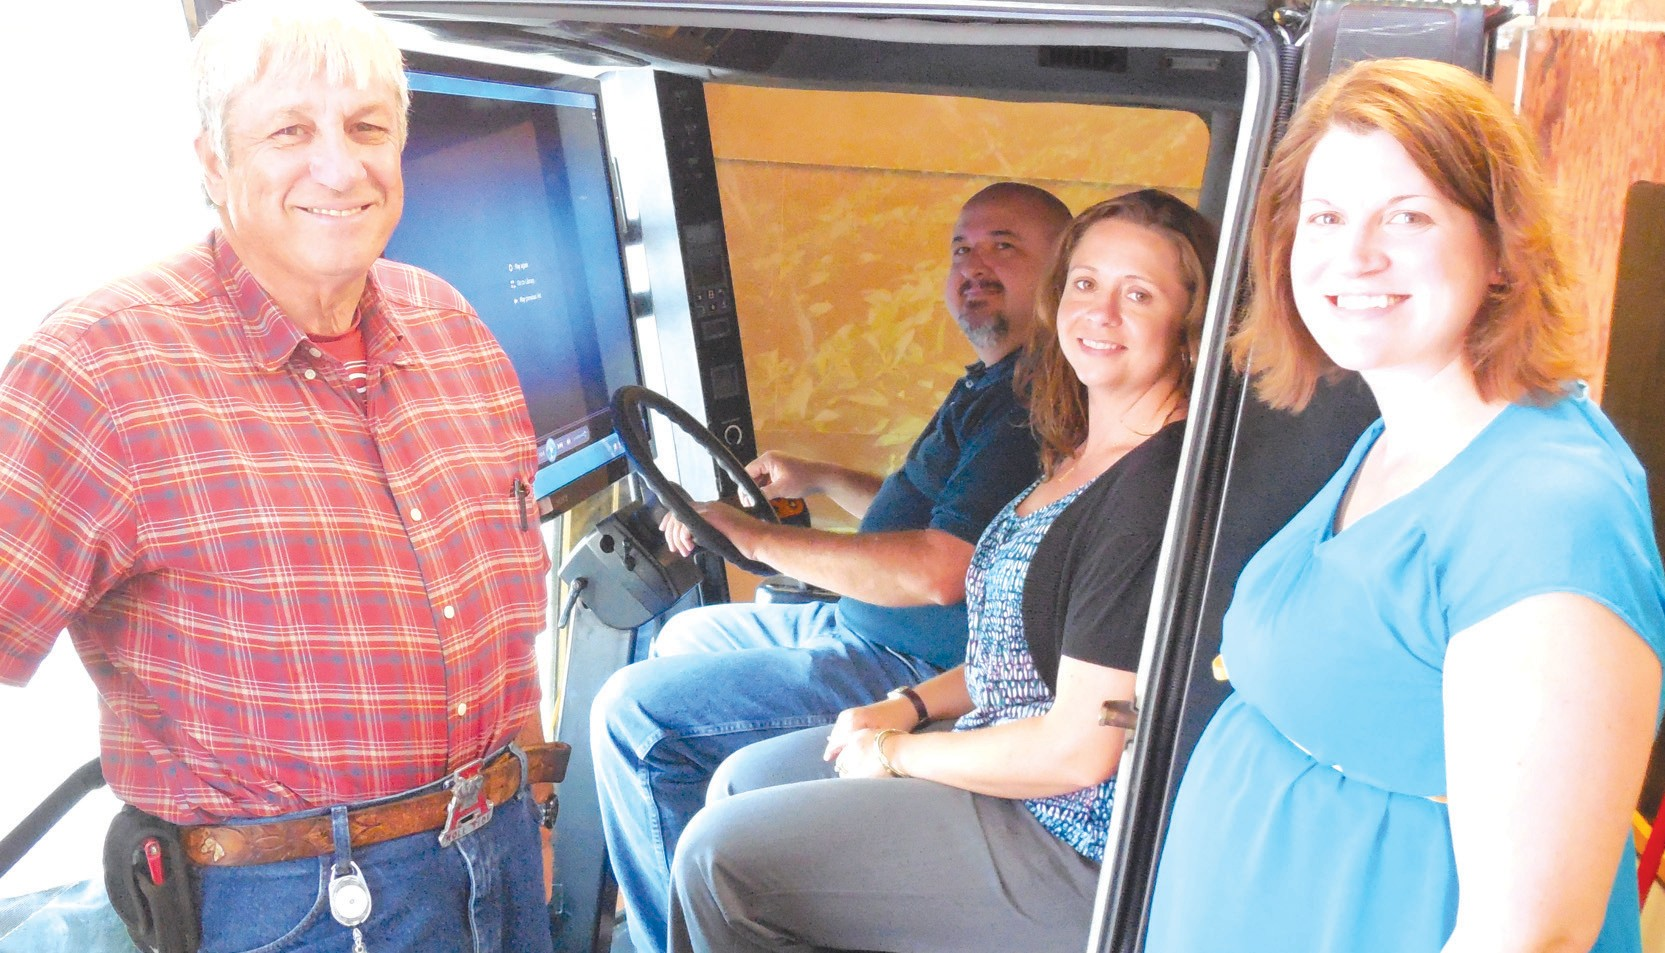 Aboard the Ag in Action mobile learning lab cotton picker (from left to right) are Jimmy Tucker, soil conservation technician with the Natural Resource and Conservation Service (NRCS); Mark Butler, watershed coordinator with the Soil & Water Conservation District (SWCD); Polly Morris, district administrative coordinator with SWCD; and Merry Gaines, district conservationist with NRCS.